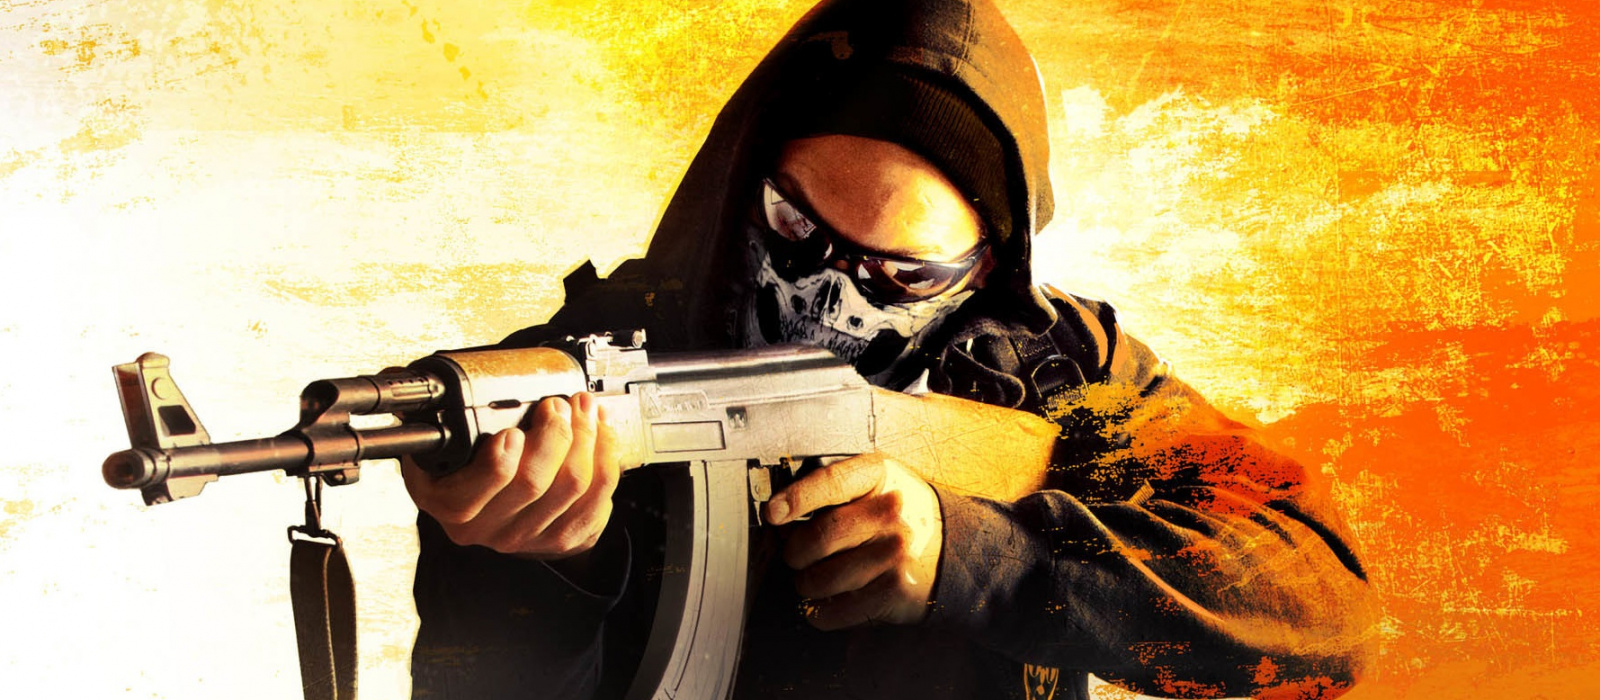 Counter-Strike: Global Offensive collapses and does not unfold. Solution